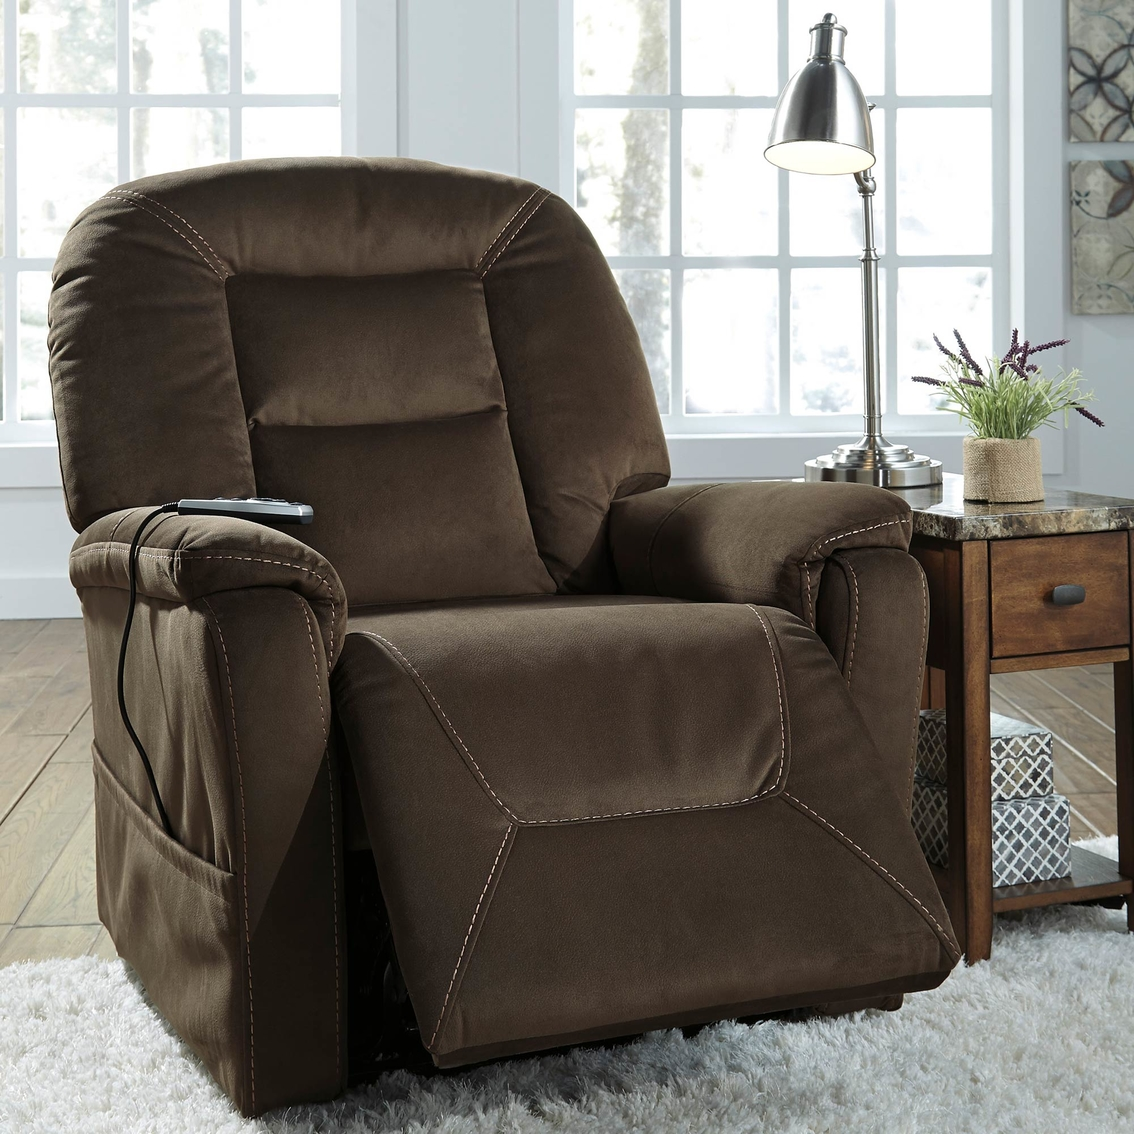 Ashley Furniture Recliner Chairs Ashley Samir Power Lift Recliner With Heat And Massage Chairs